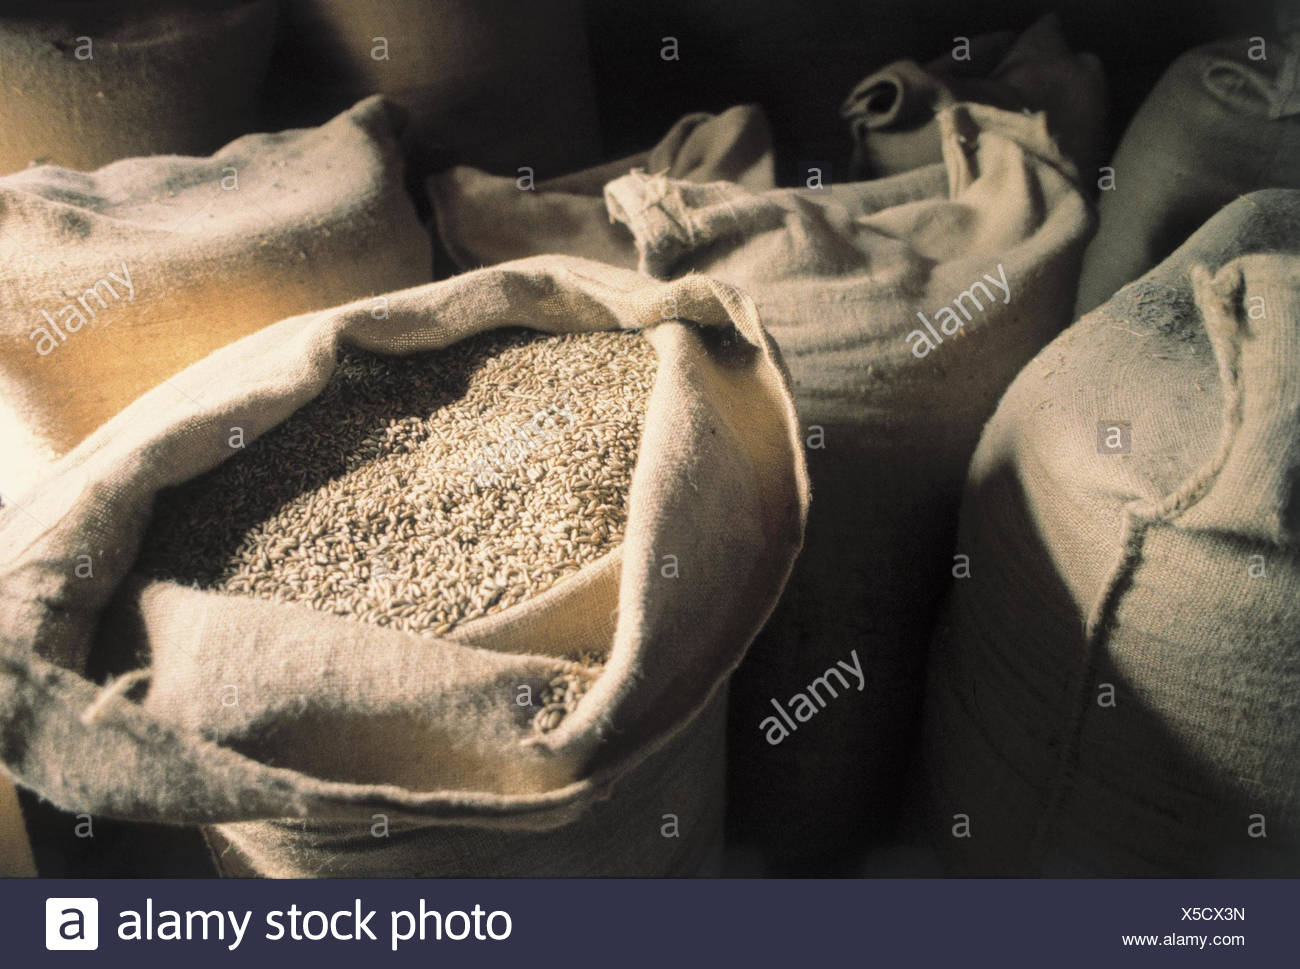 Mill, detail, grain bags, inside, grain mill, Germany, Black Forest, bags, jute bags, openly, grain, cereals, grain, processing, economy, Still life, close up - Stock Image